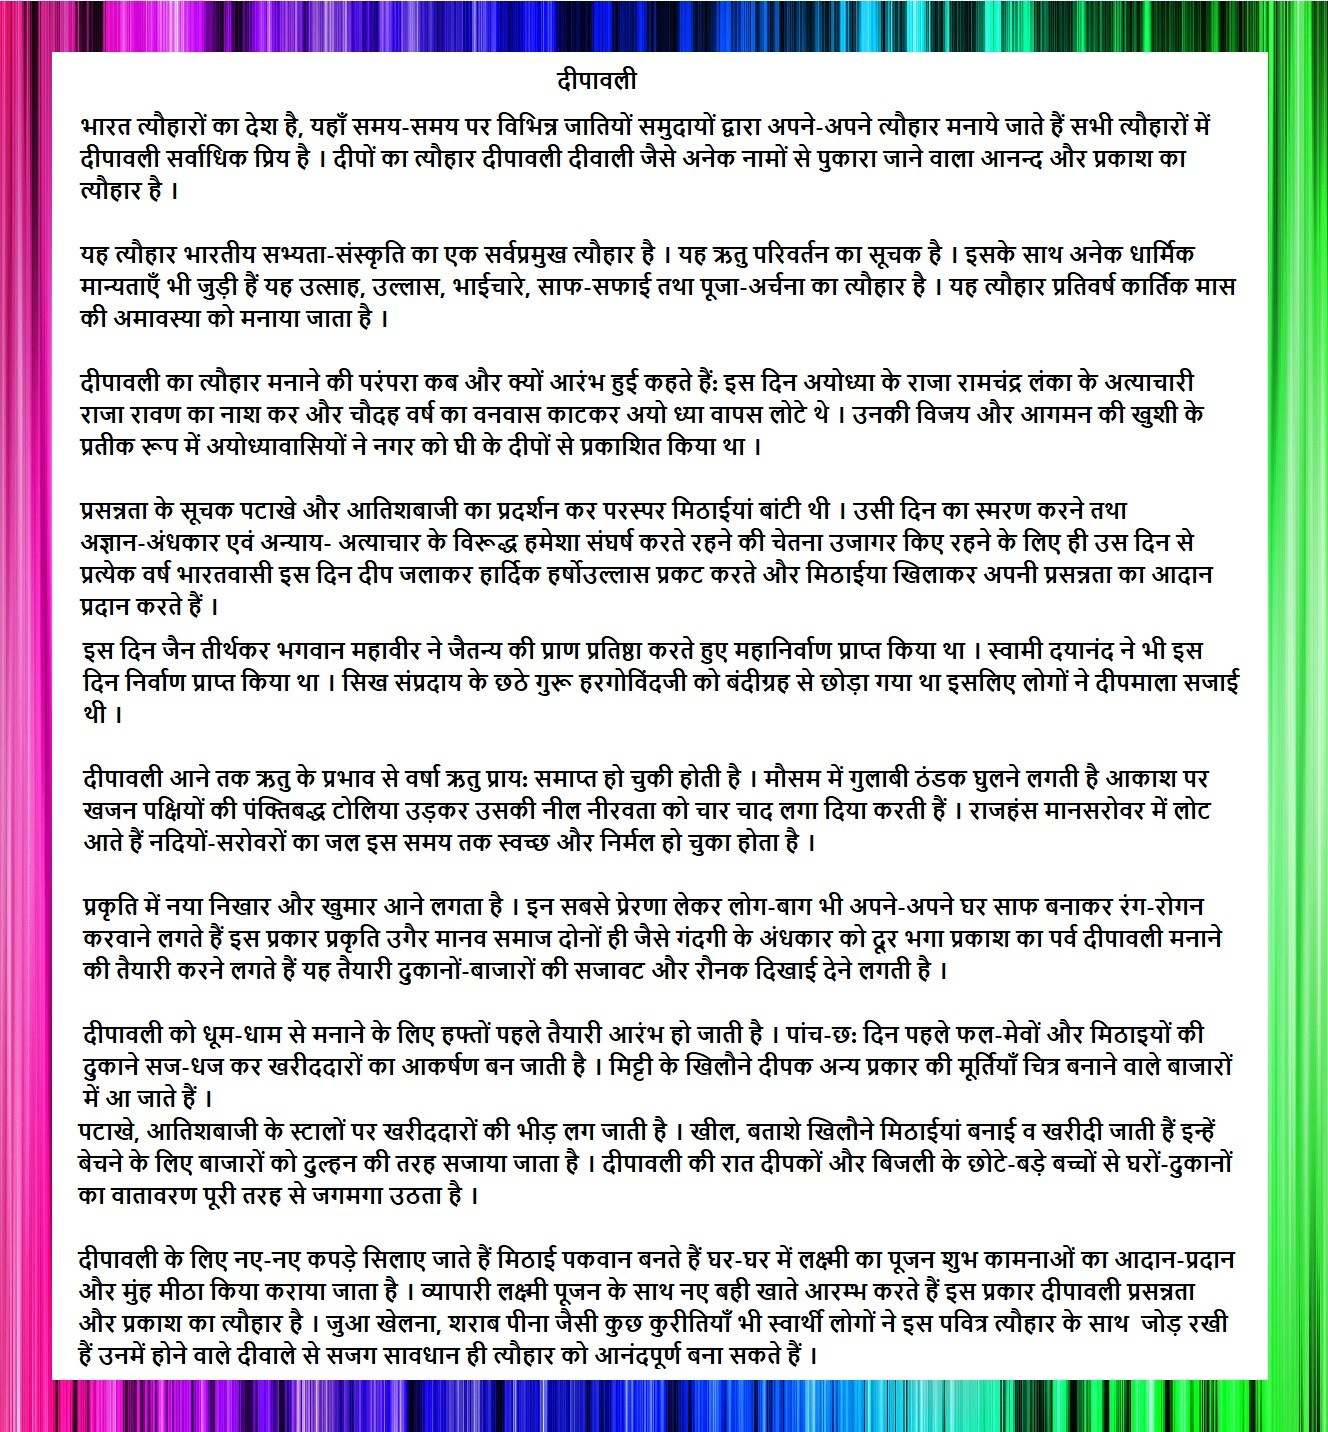 011 Essay Example Happy Diwali For School Students Inresizeu003d5602c604 Fantastic In Hindi On 50 Words Class Short 3 Full